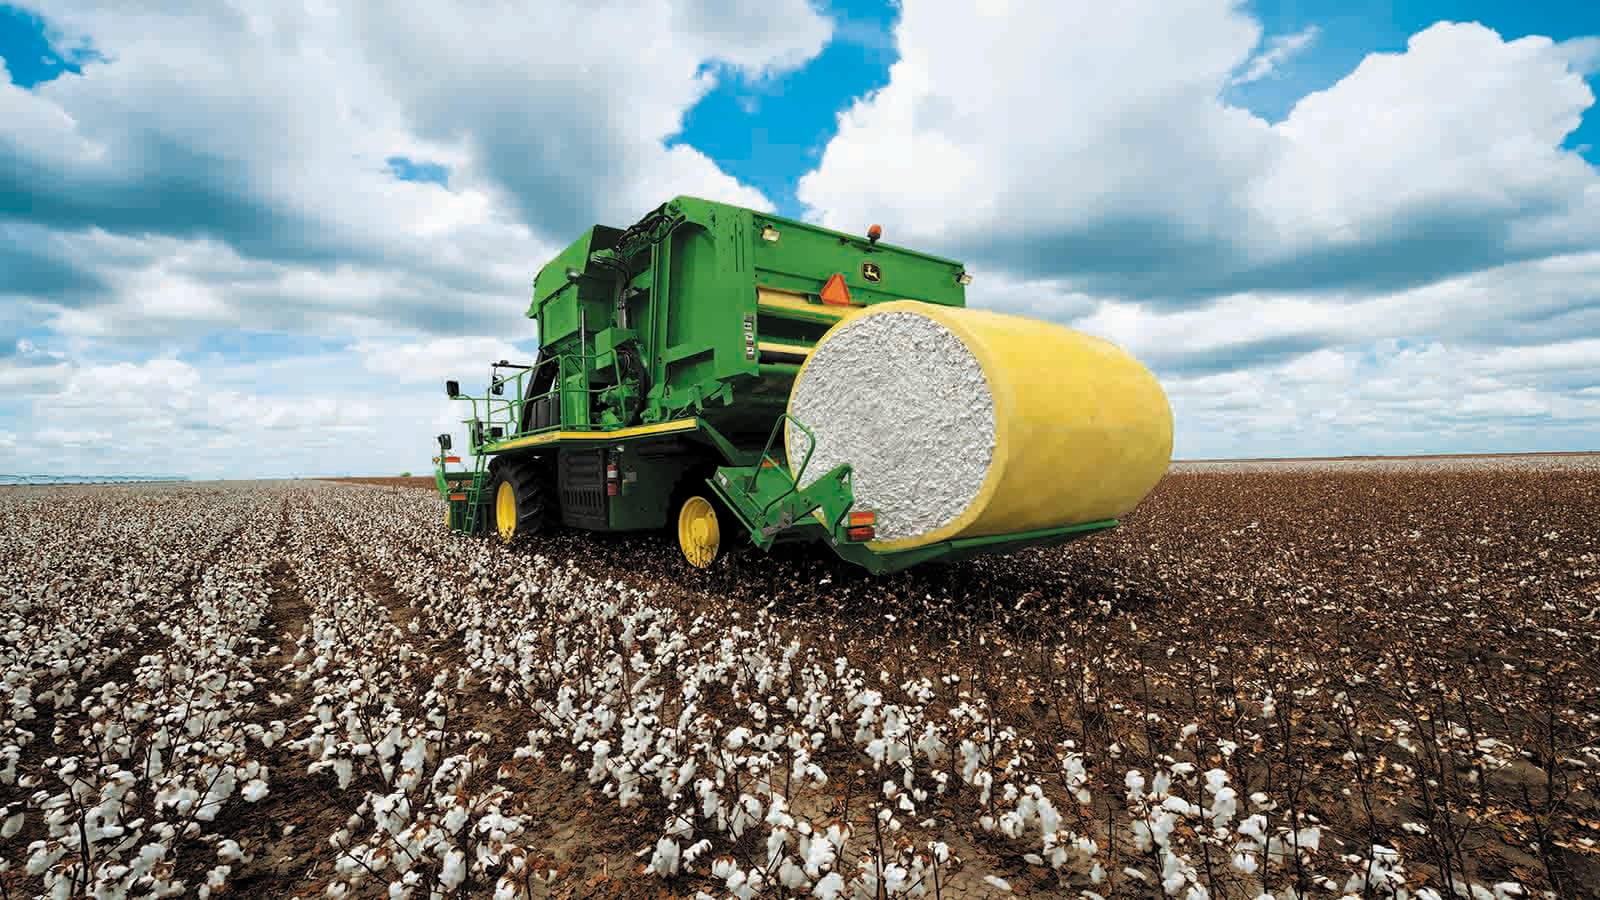 Round-module weighing is standard on all John Deere CP690 Cotton Pickers.